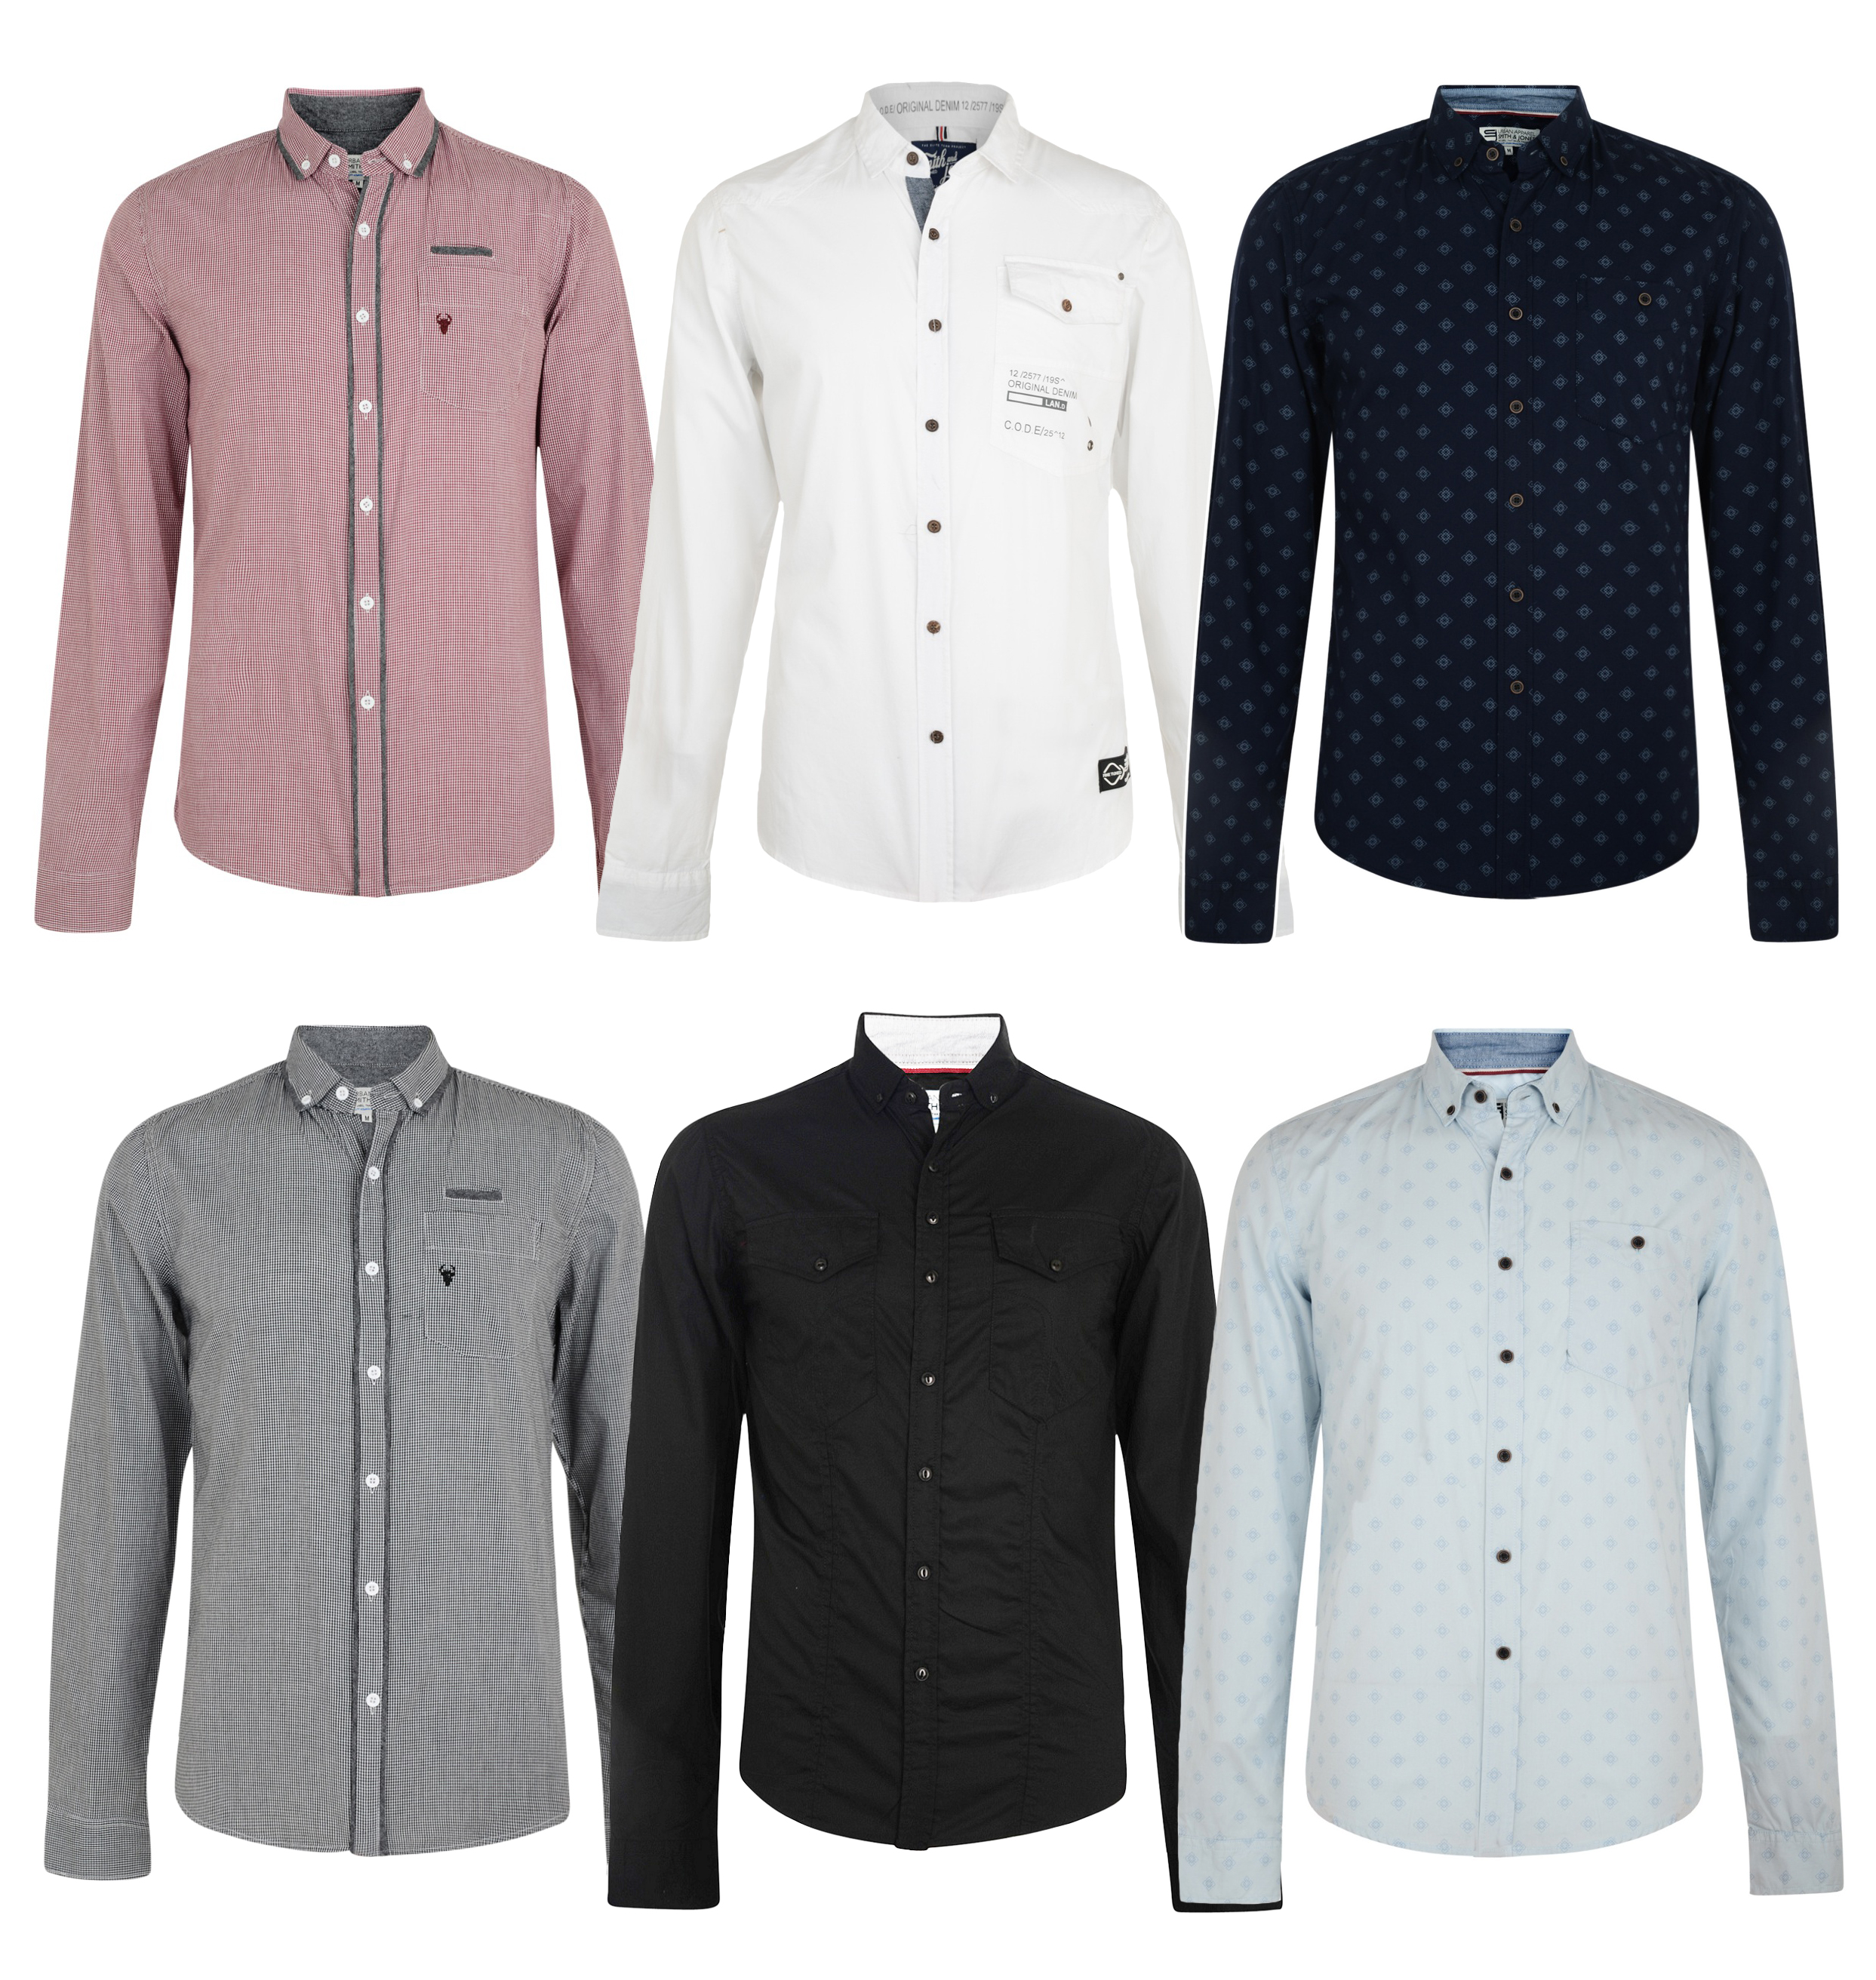 ESPRIT MENS SHIRTS does not apply VZIDVSQ